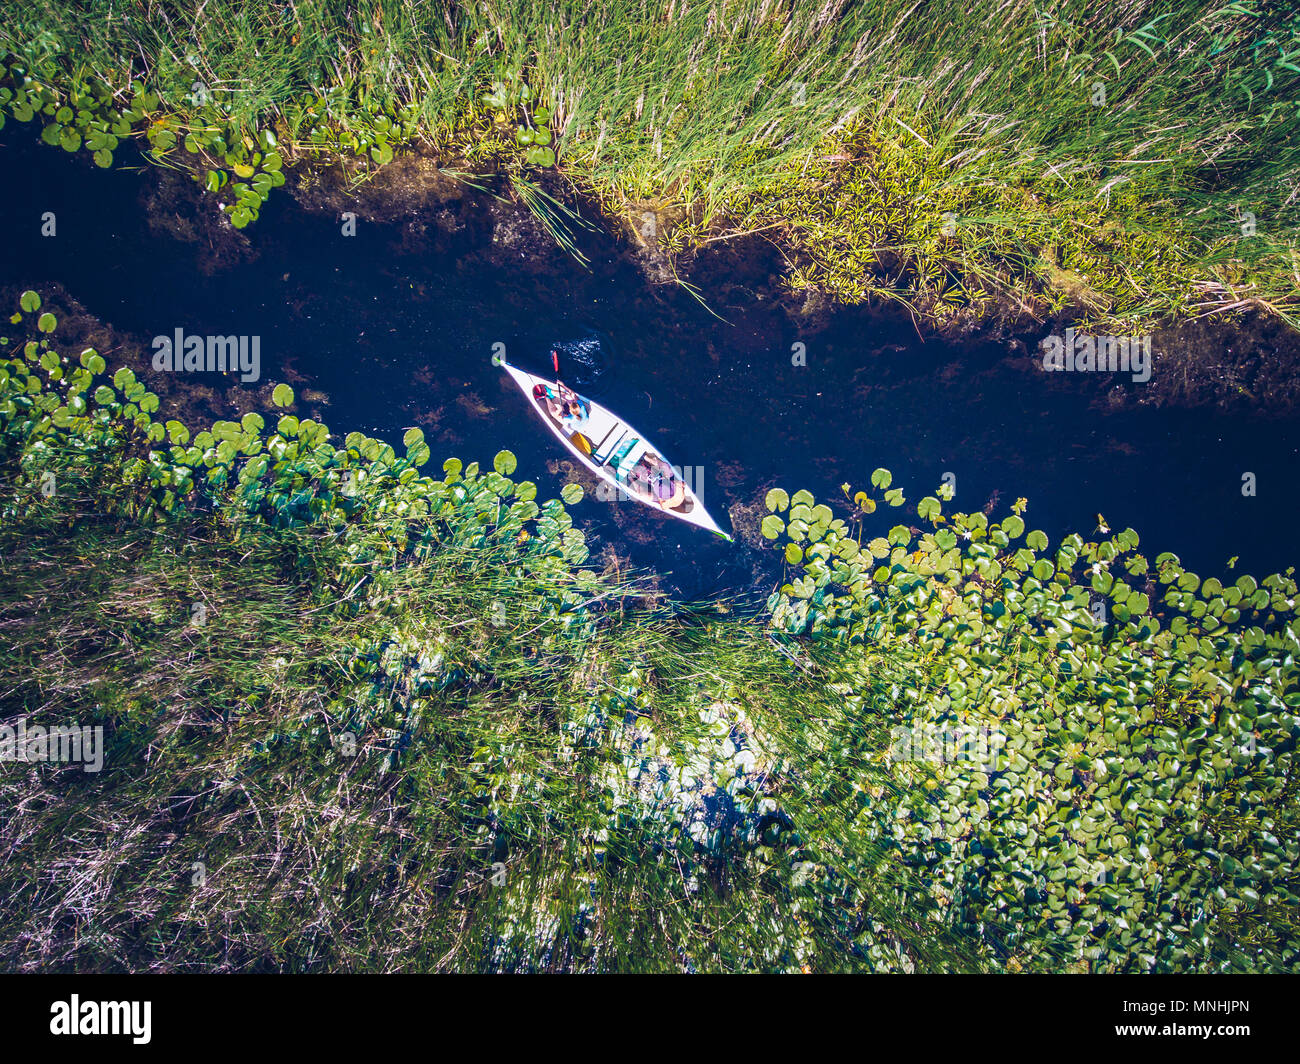 Discovering Danube Delta in a Canoe aerial view - Stock Image